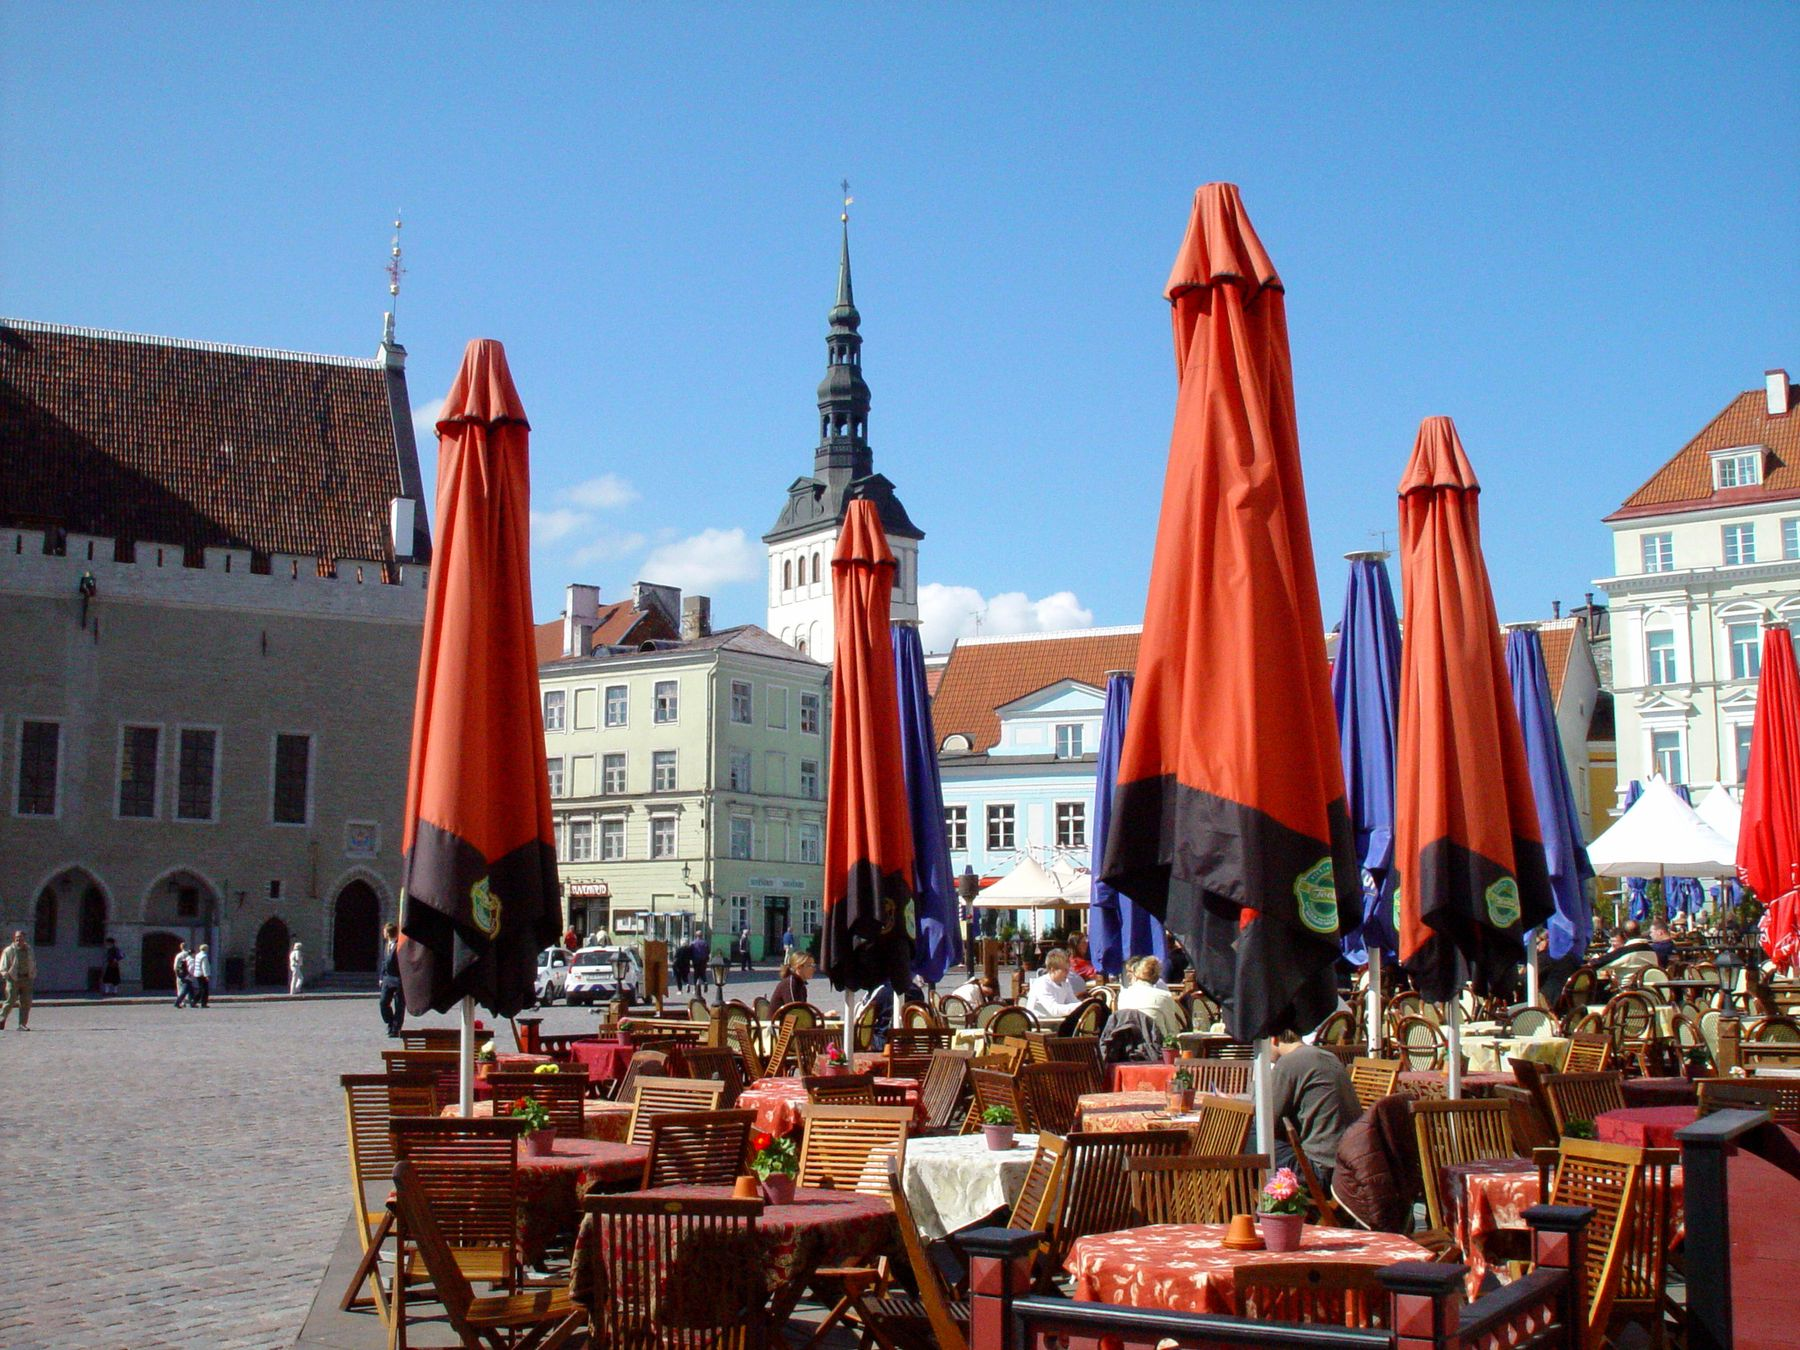 tables, chairs, and umbrellas in an Estonian public square